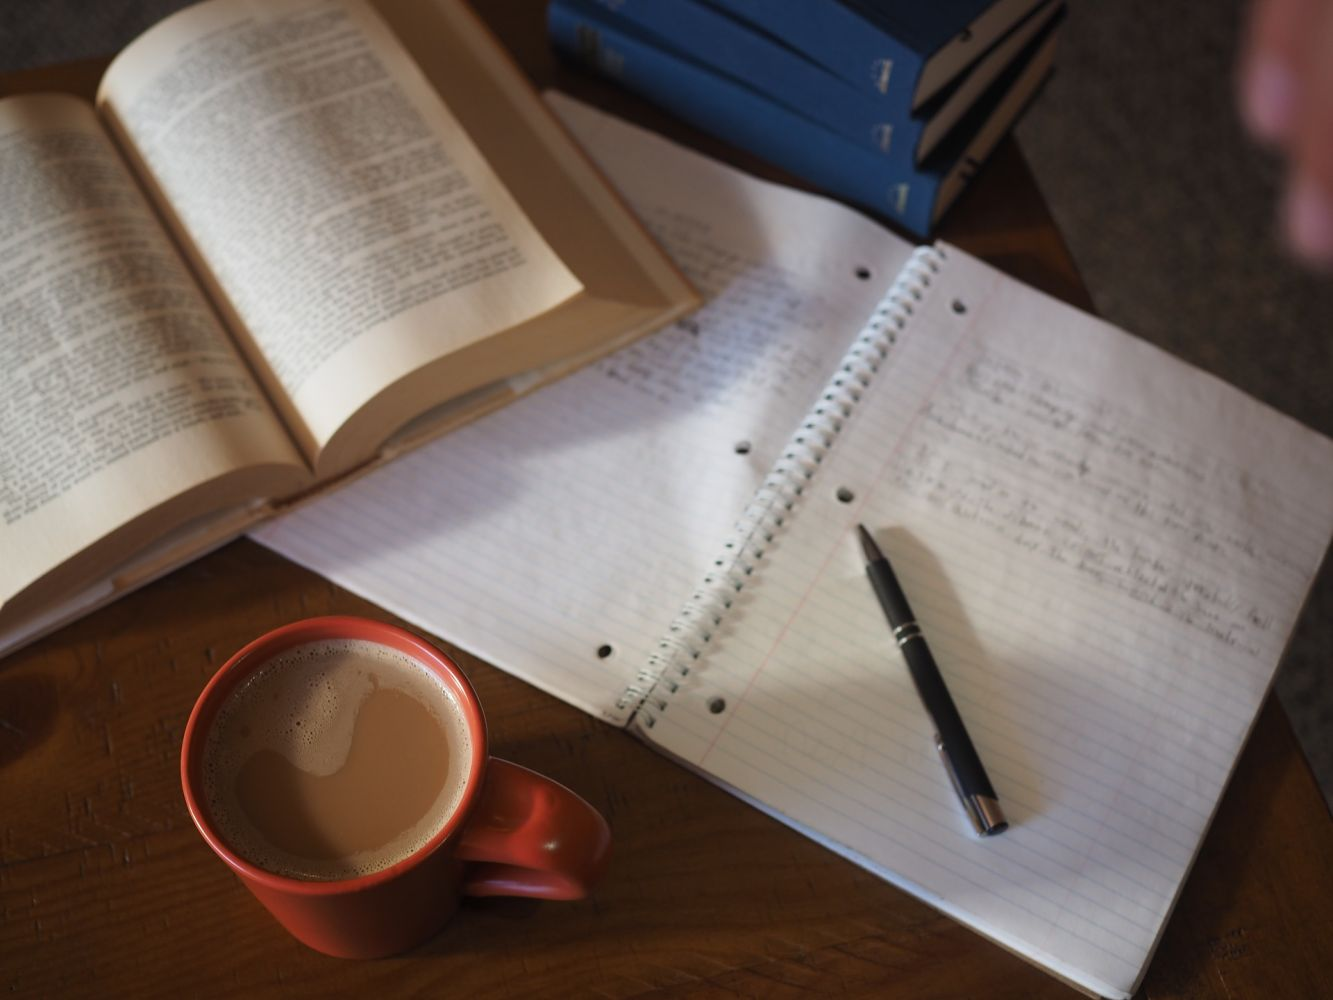 How to study at home - desk & coffee